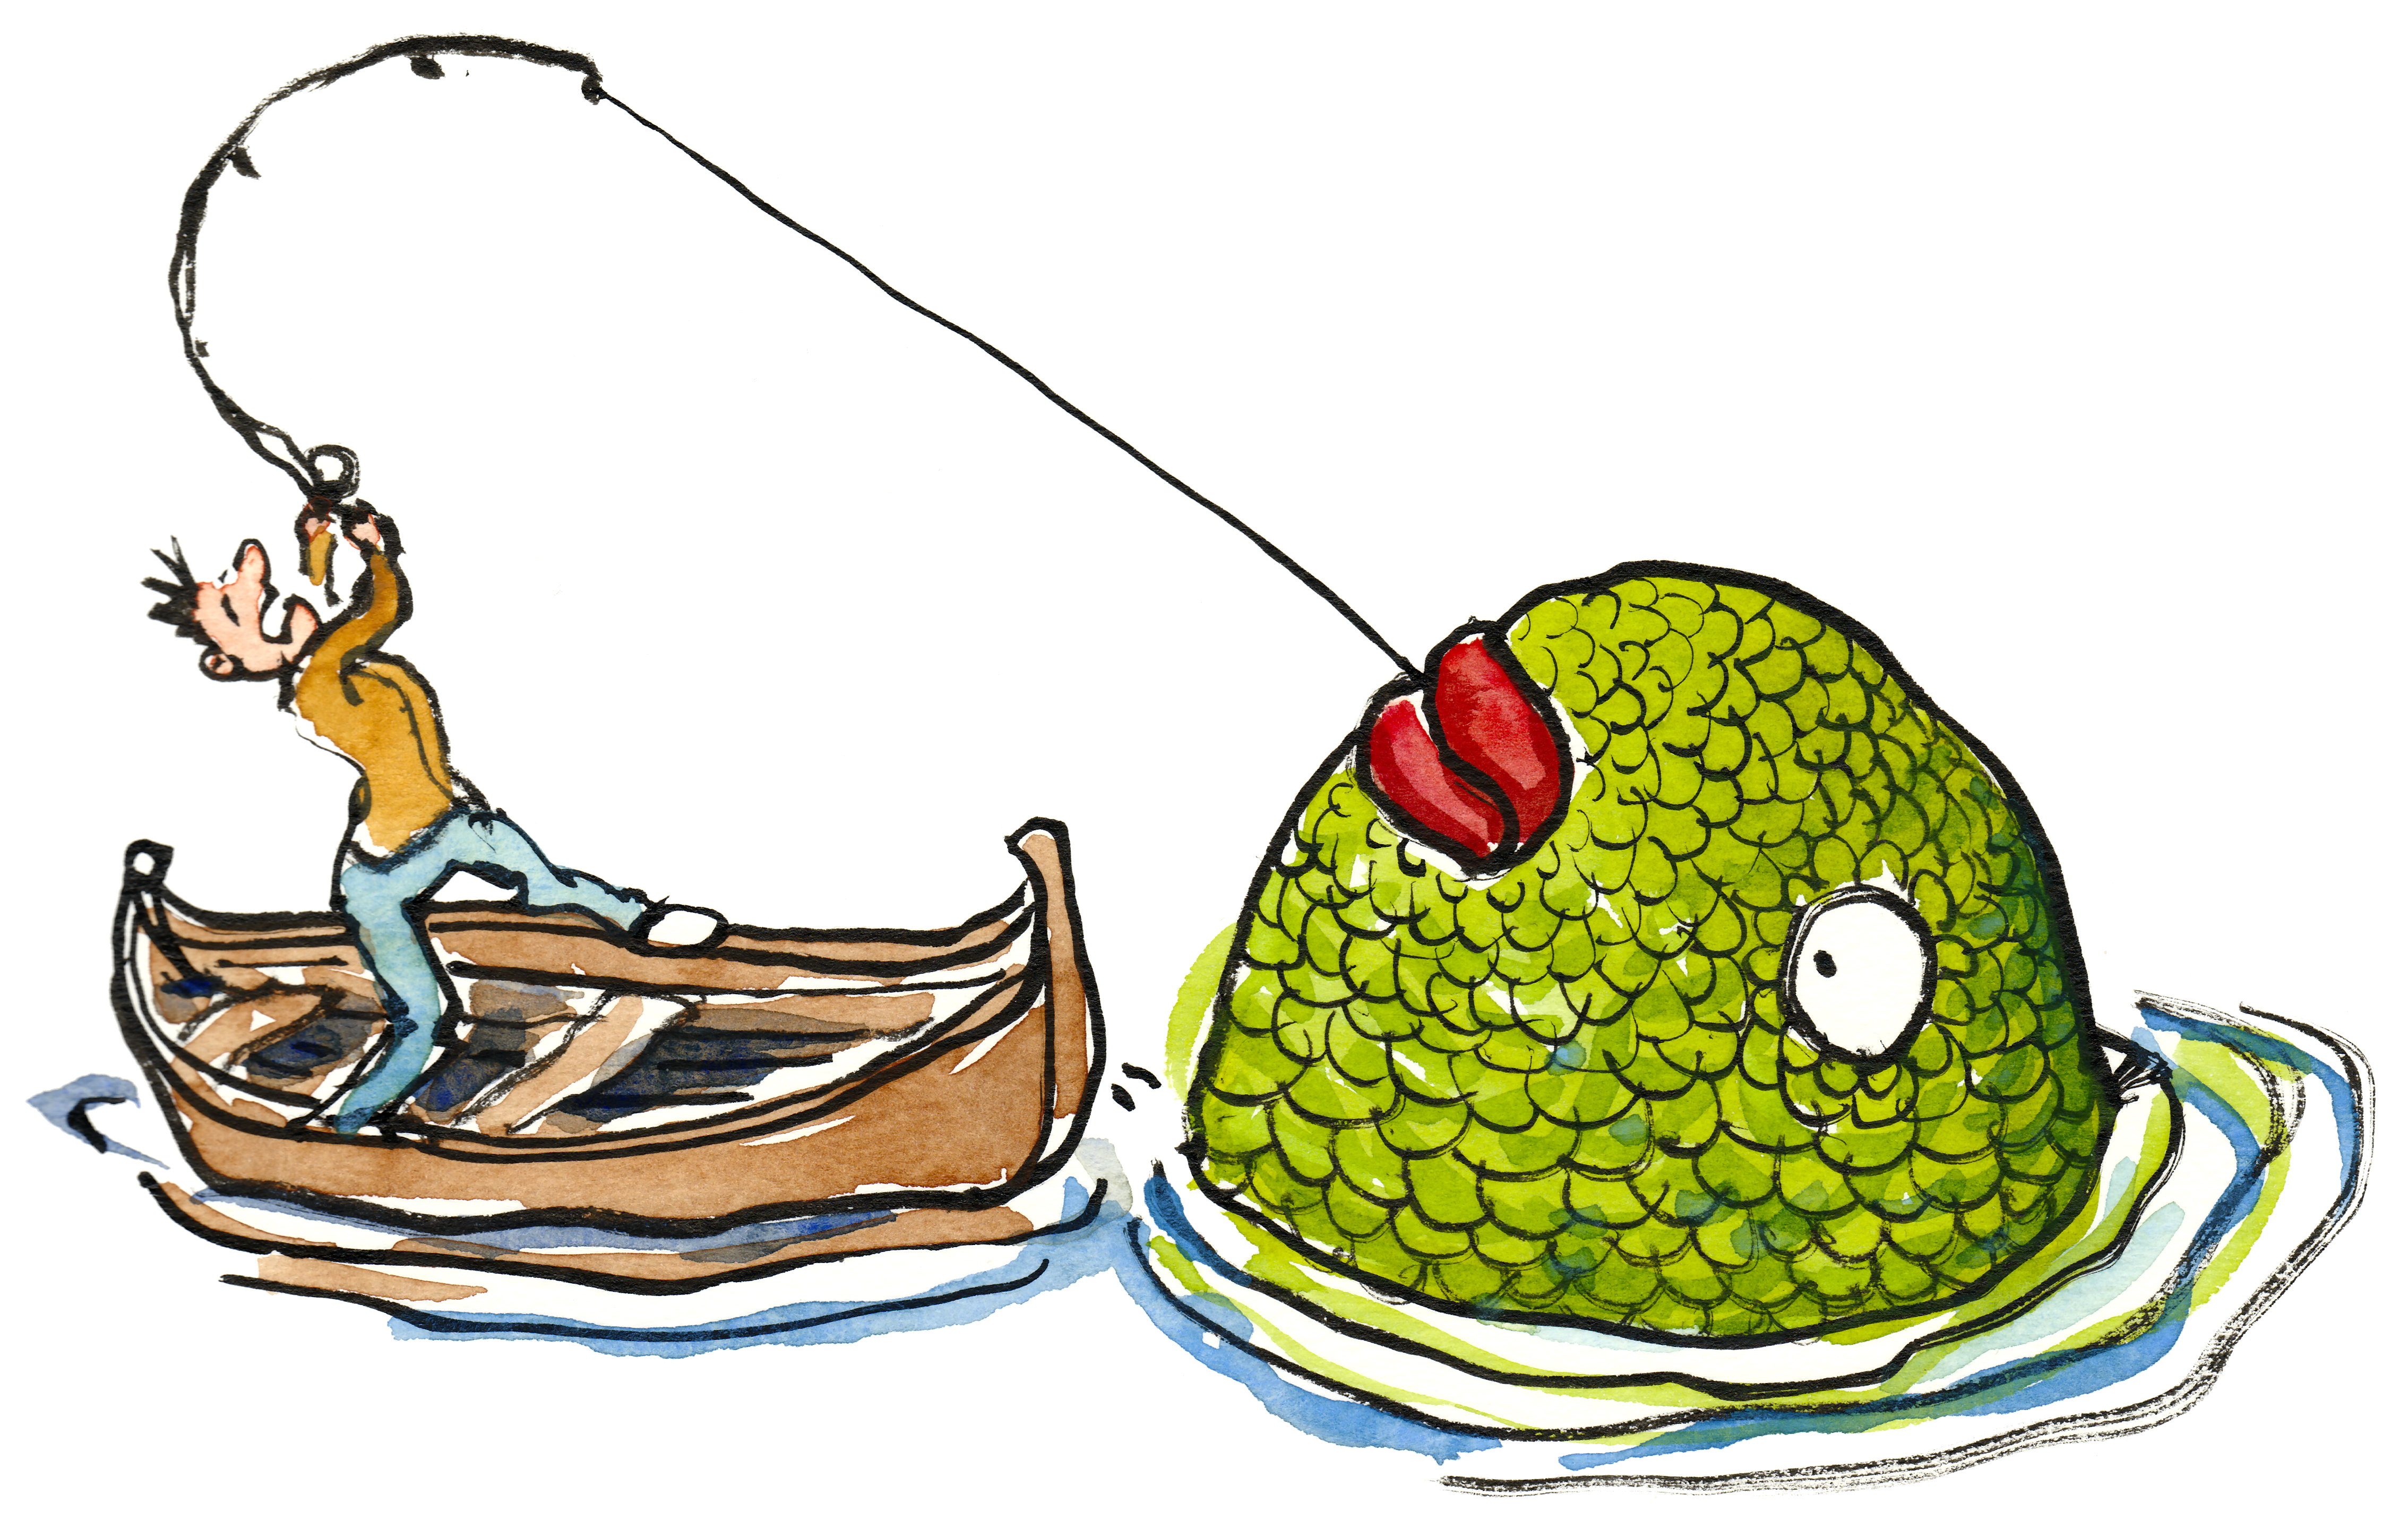 Fishing clipart caught fish. A big catch